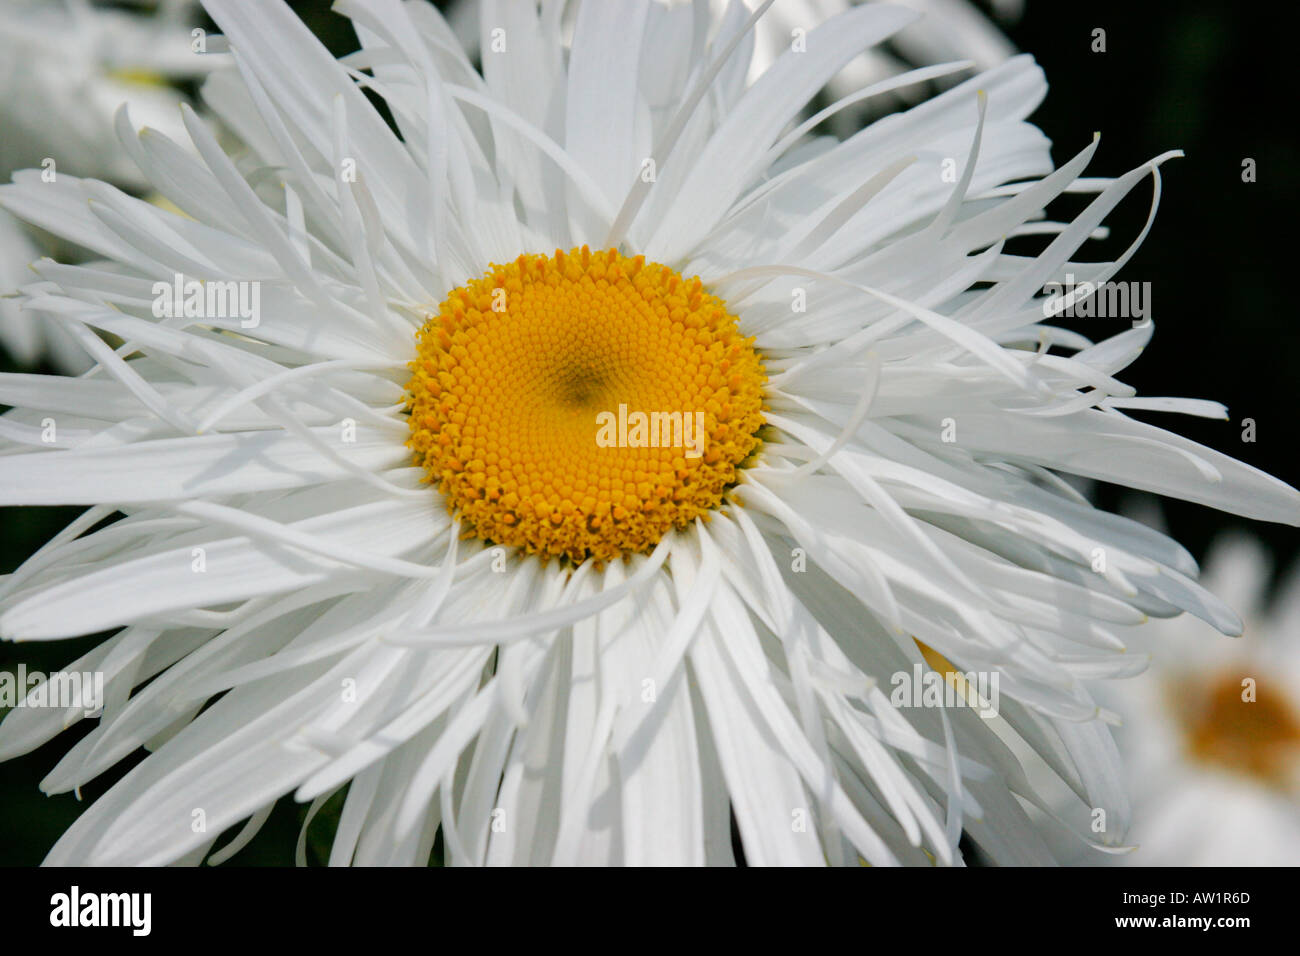 White flowers of perennial garden plant leucanthemum x superbum white flowers of perennial garden plant leucanthemum x superbum common name shasta daisy mightylinksfo